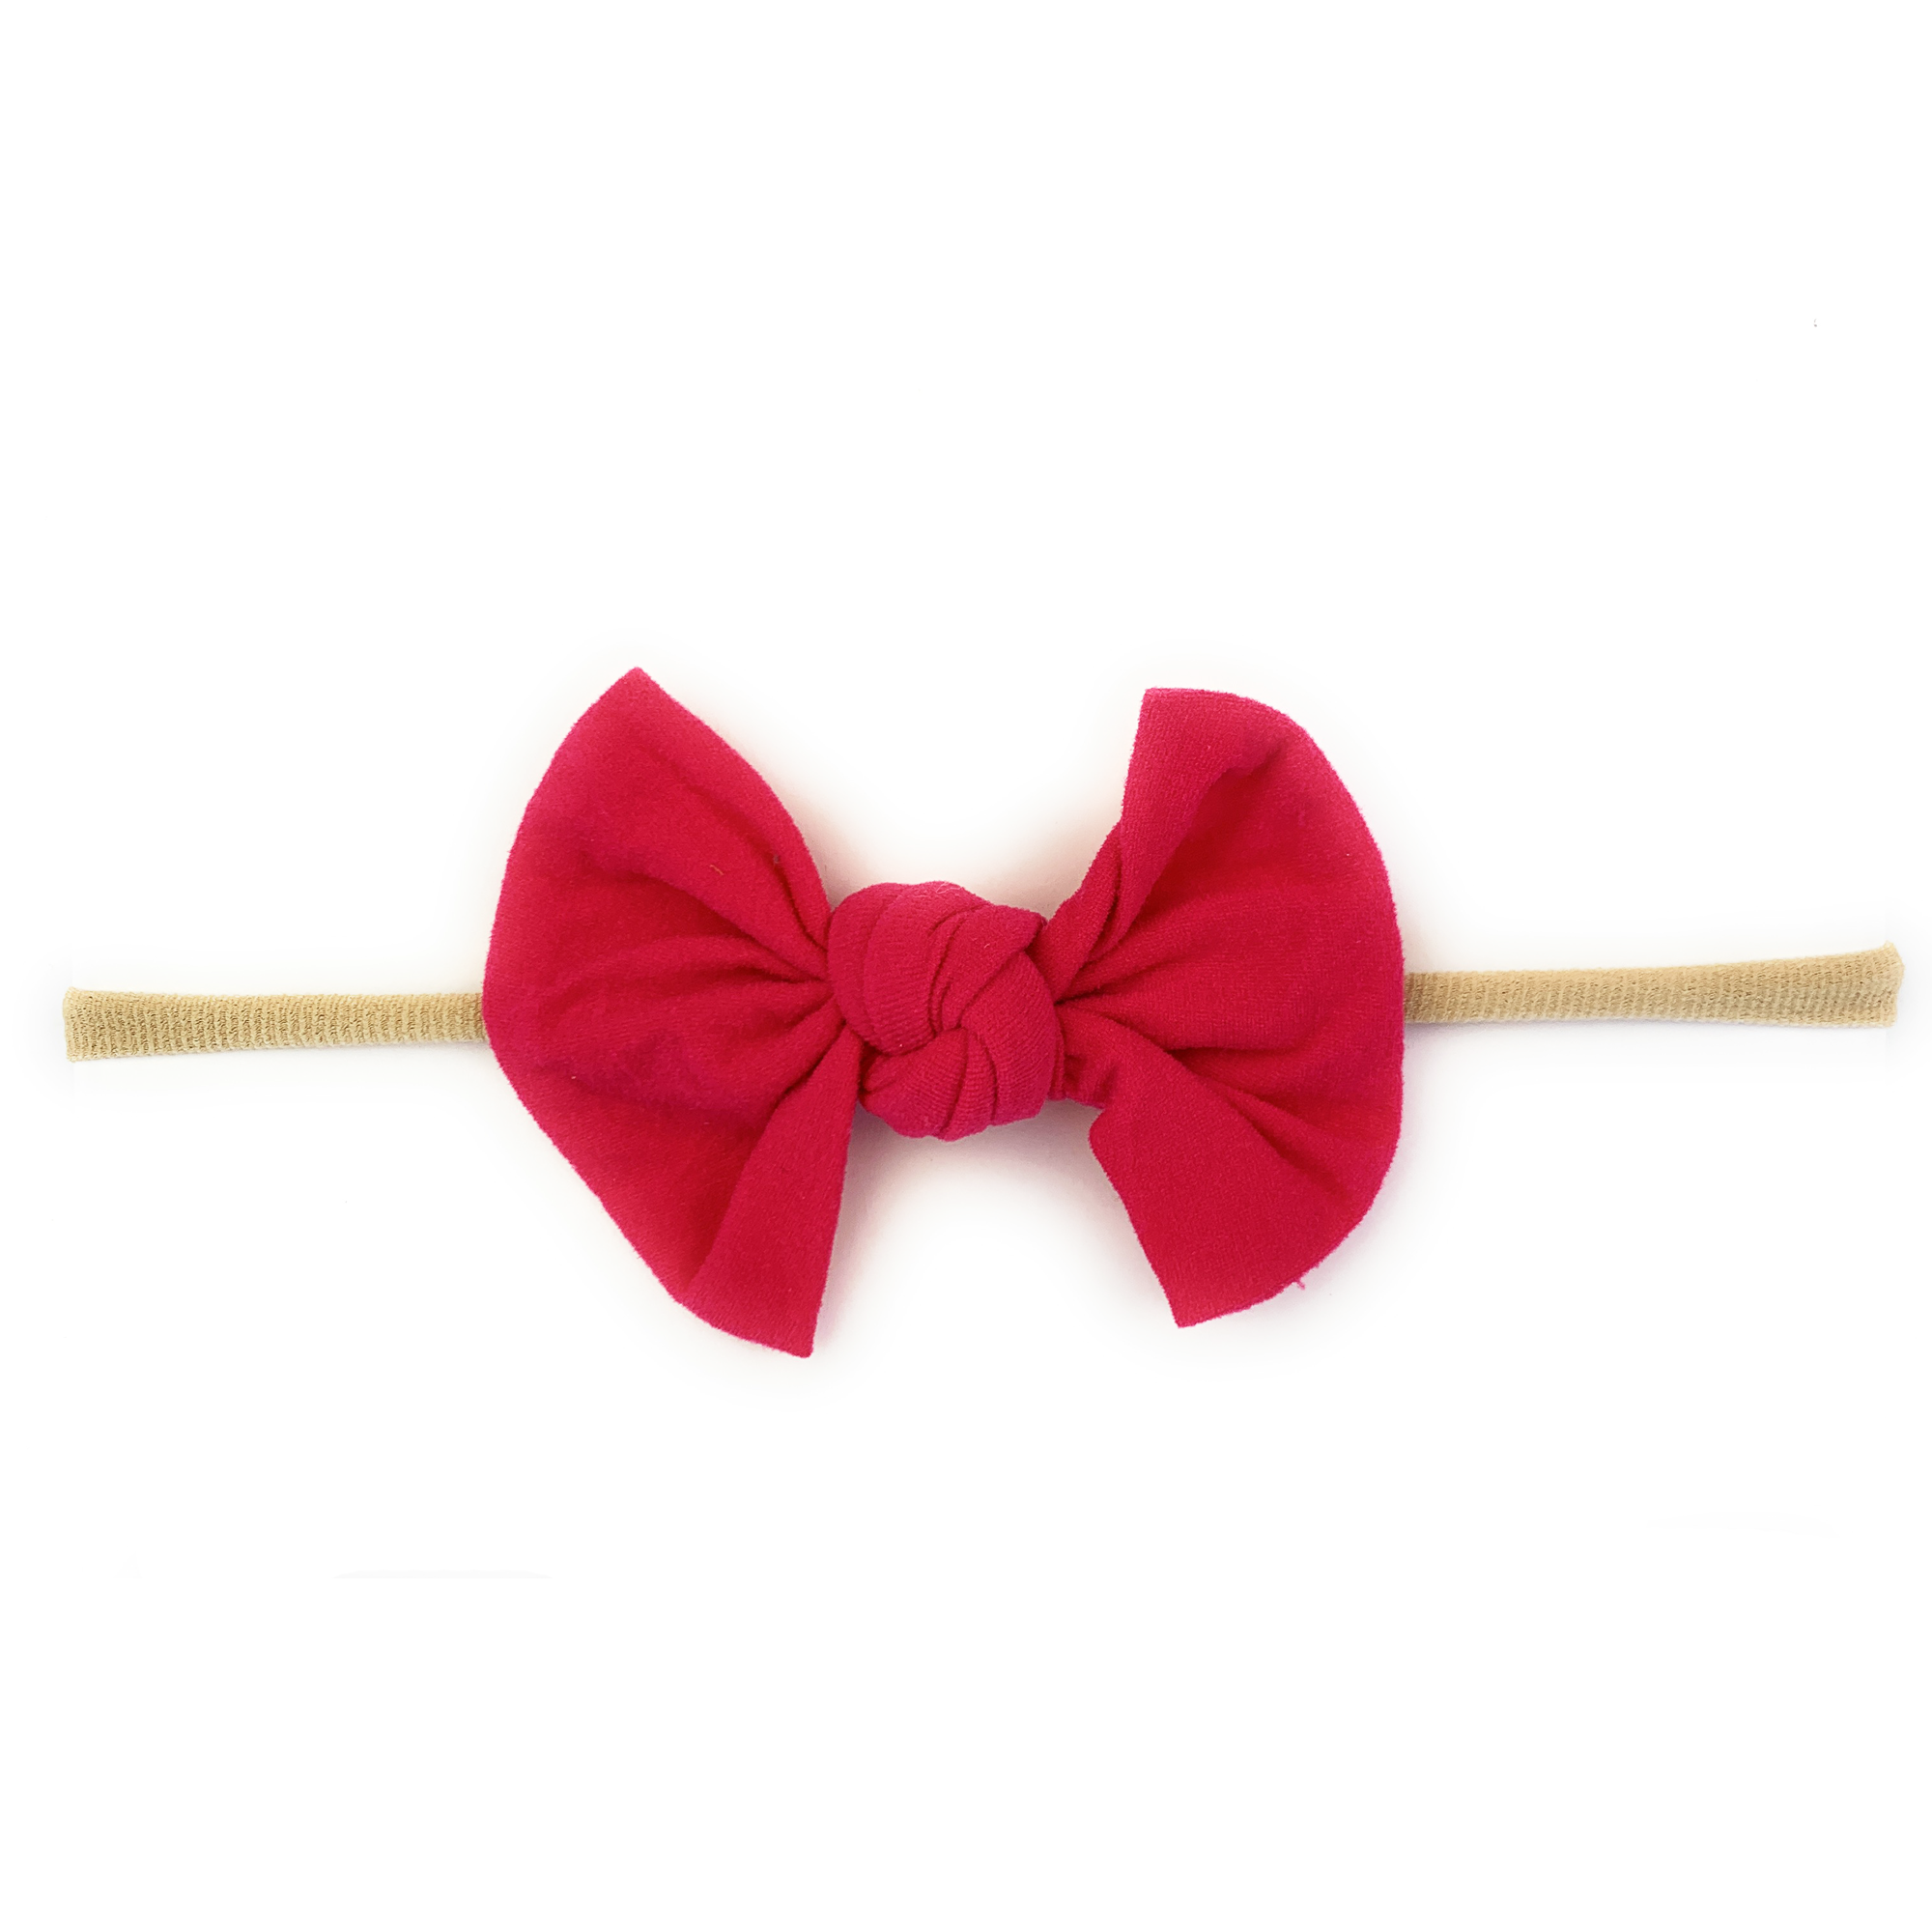 Bows for girls of all ages Colorful Bow Nylon Headband or Hair Clips